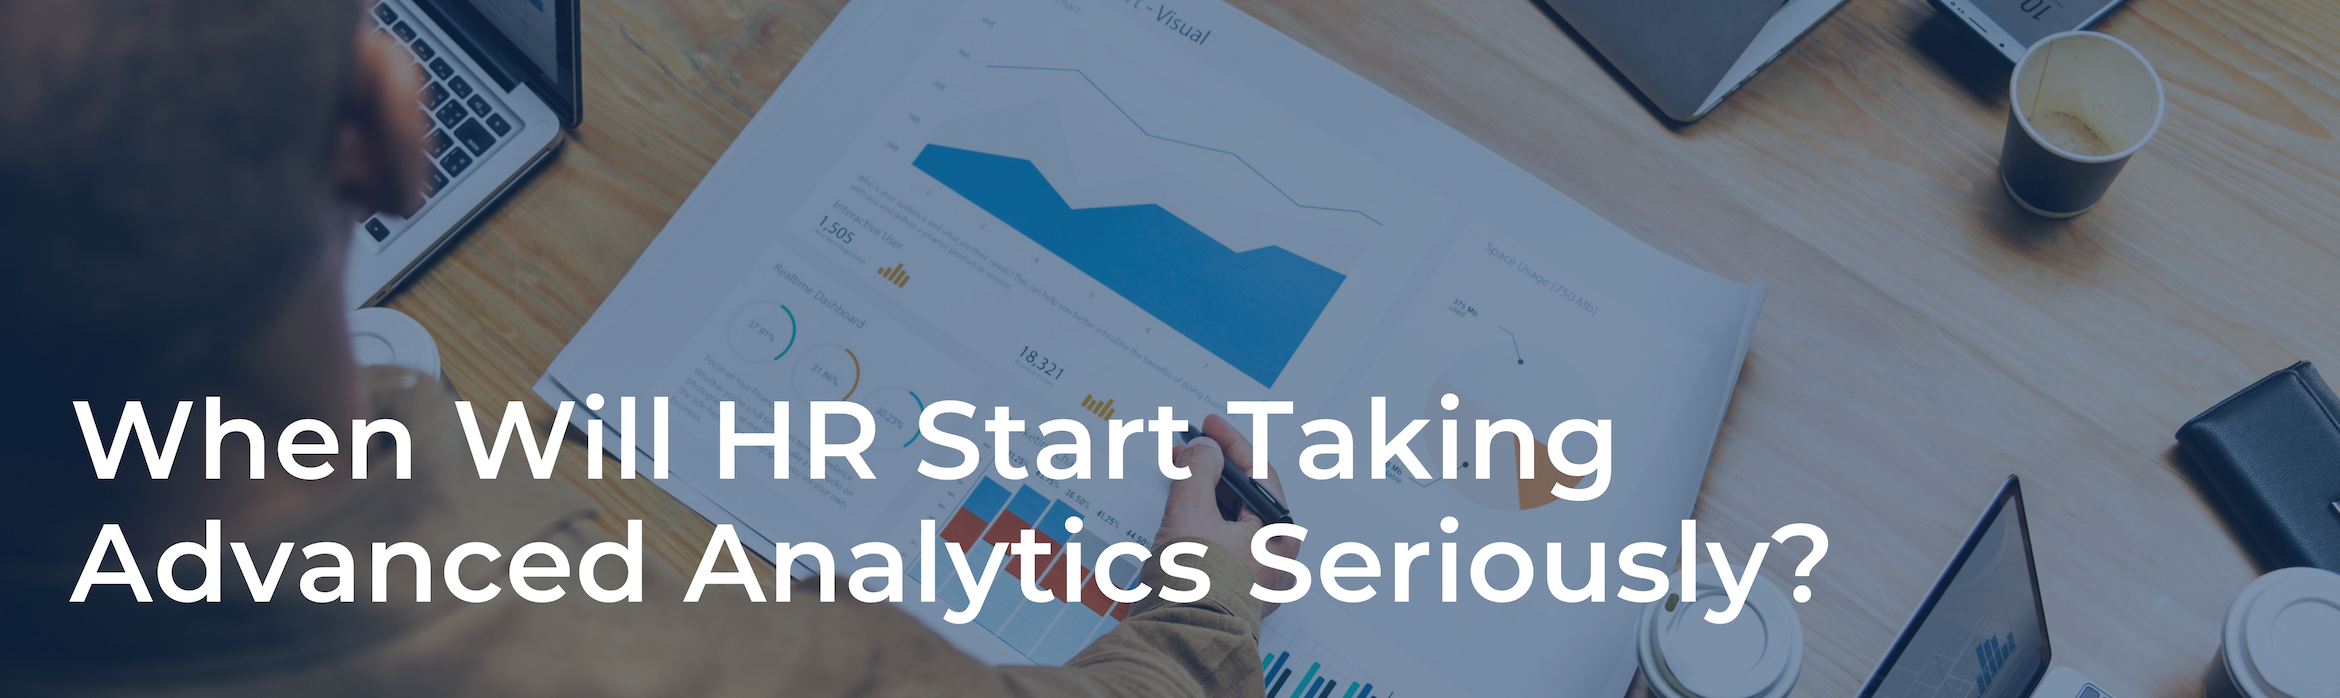 When Will HR Start Taking Advanced Analytics Seriously?